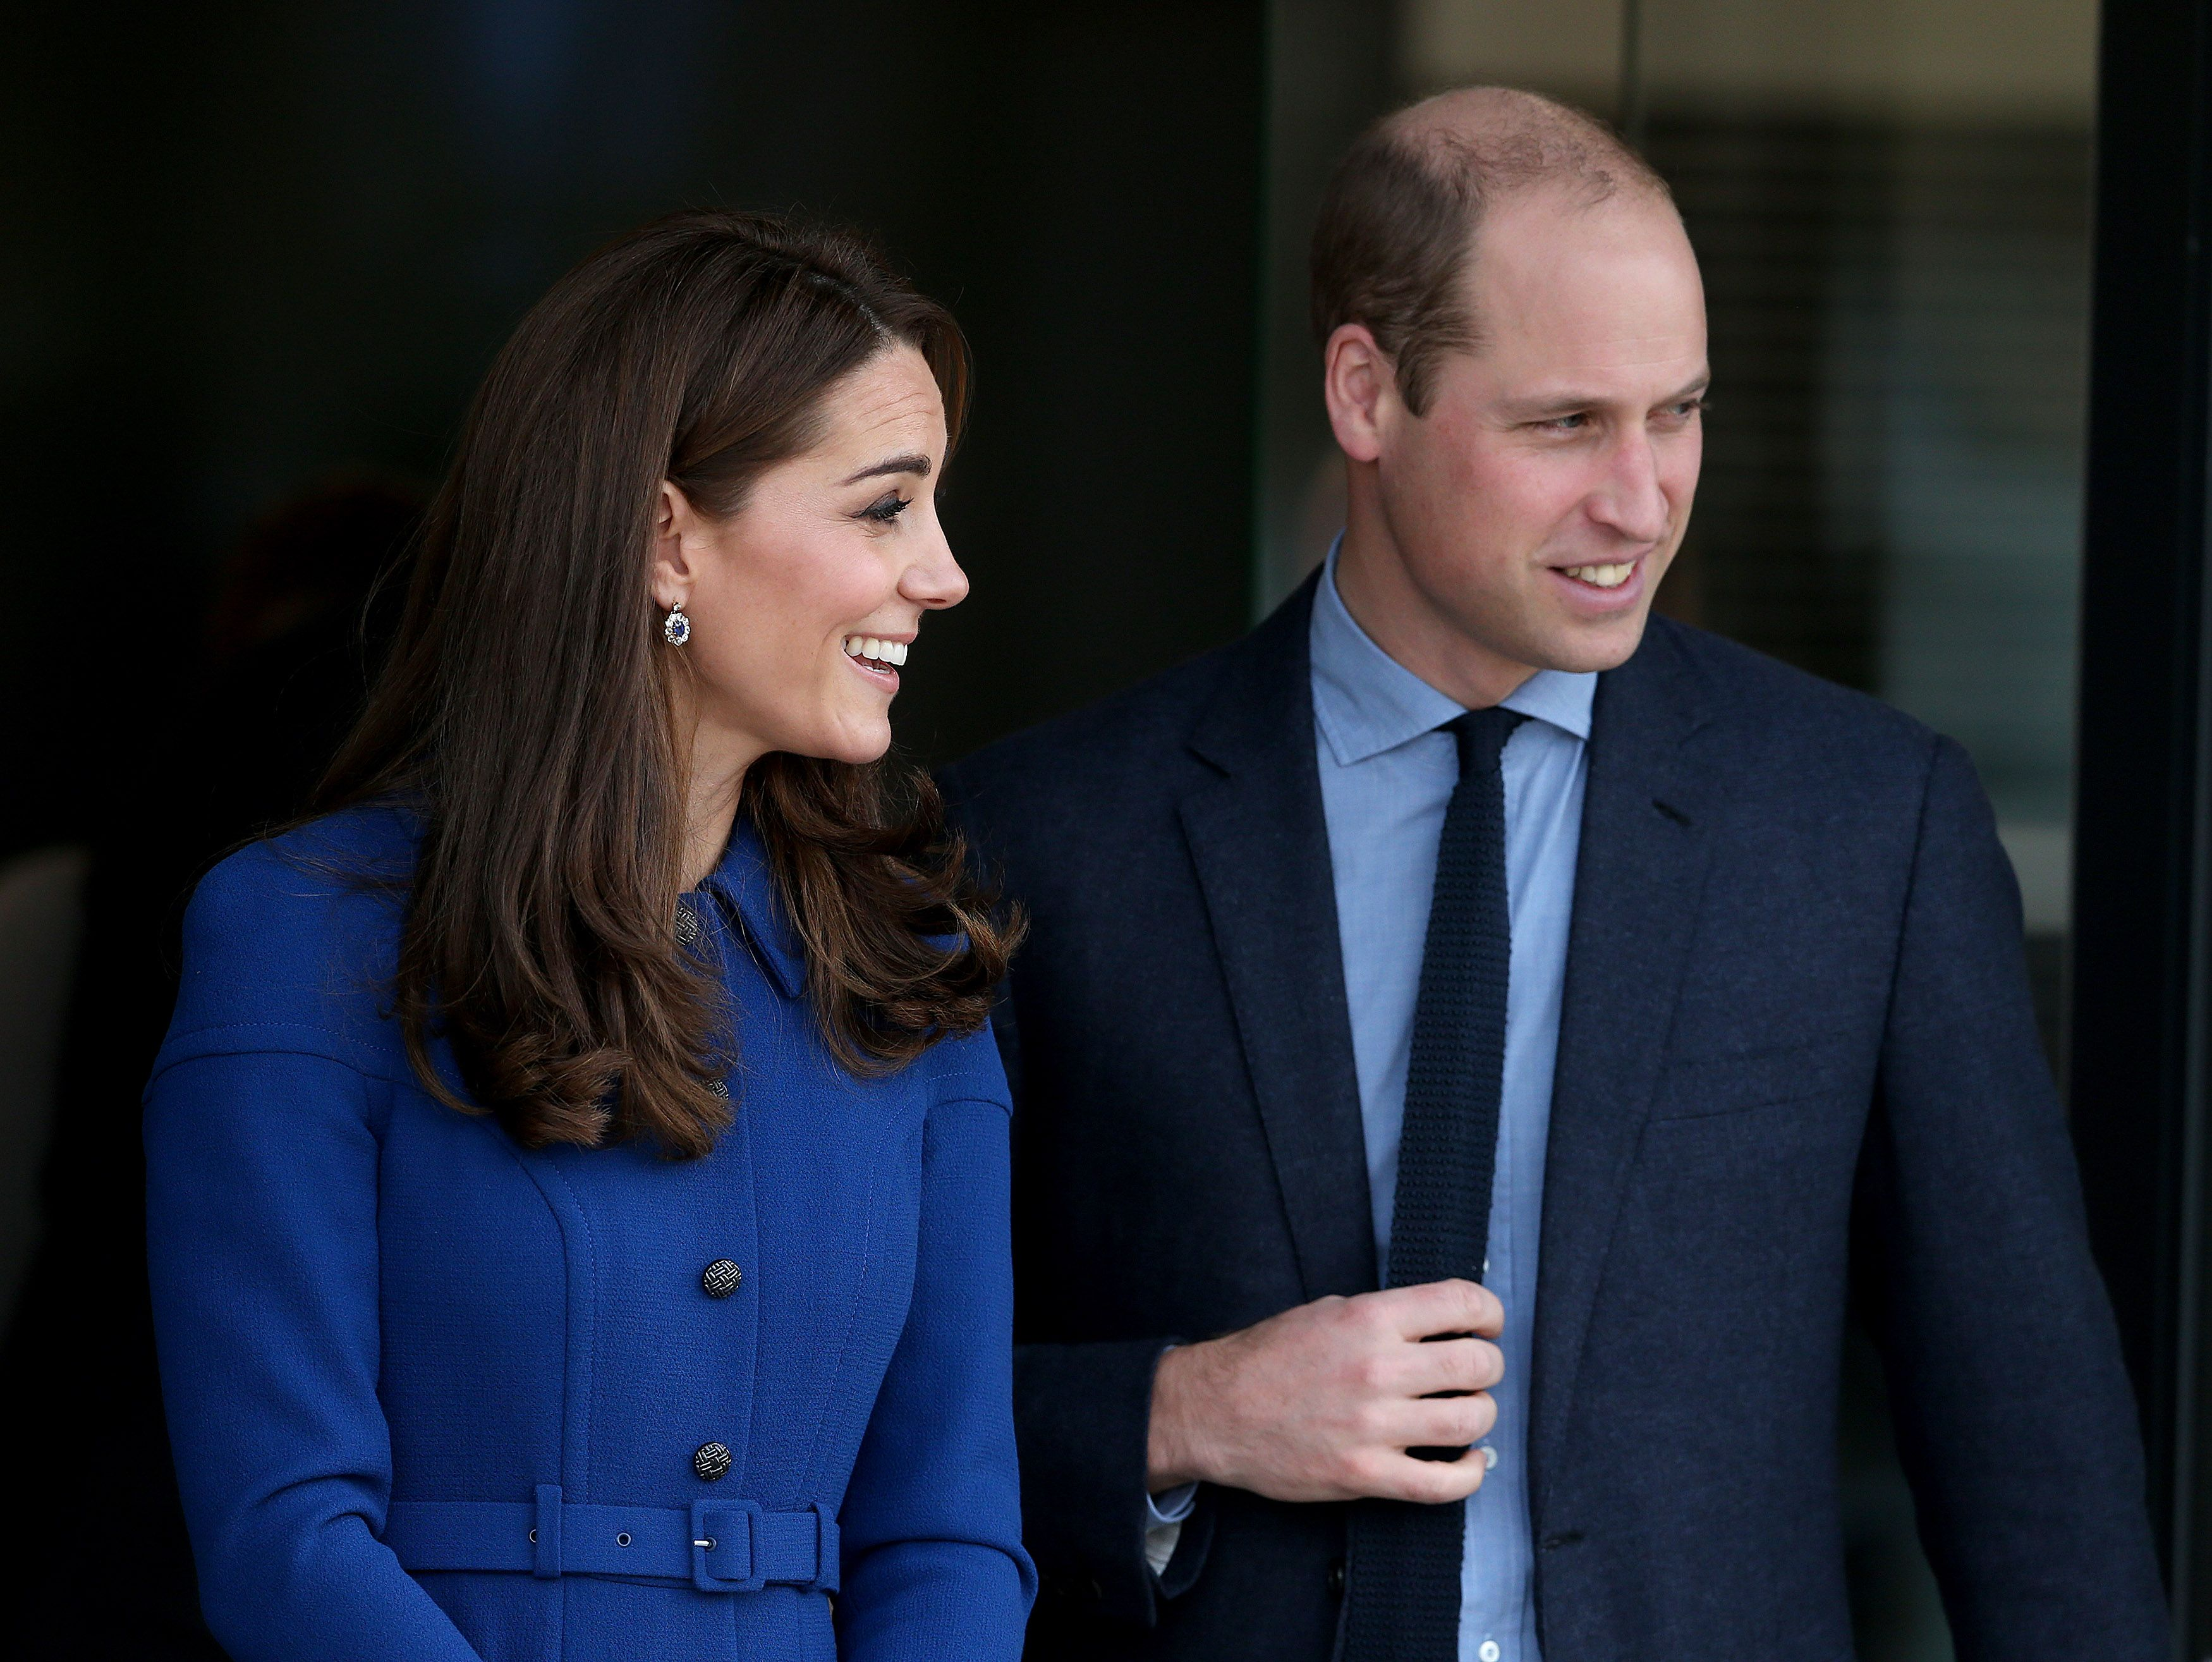 The Duke & Duchess Of Cambridge depart after at McLaren Automotive Composites Technology Centre on November 14, 2018 | Photo: Getty Images